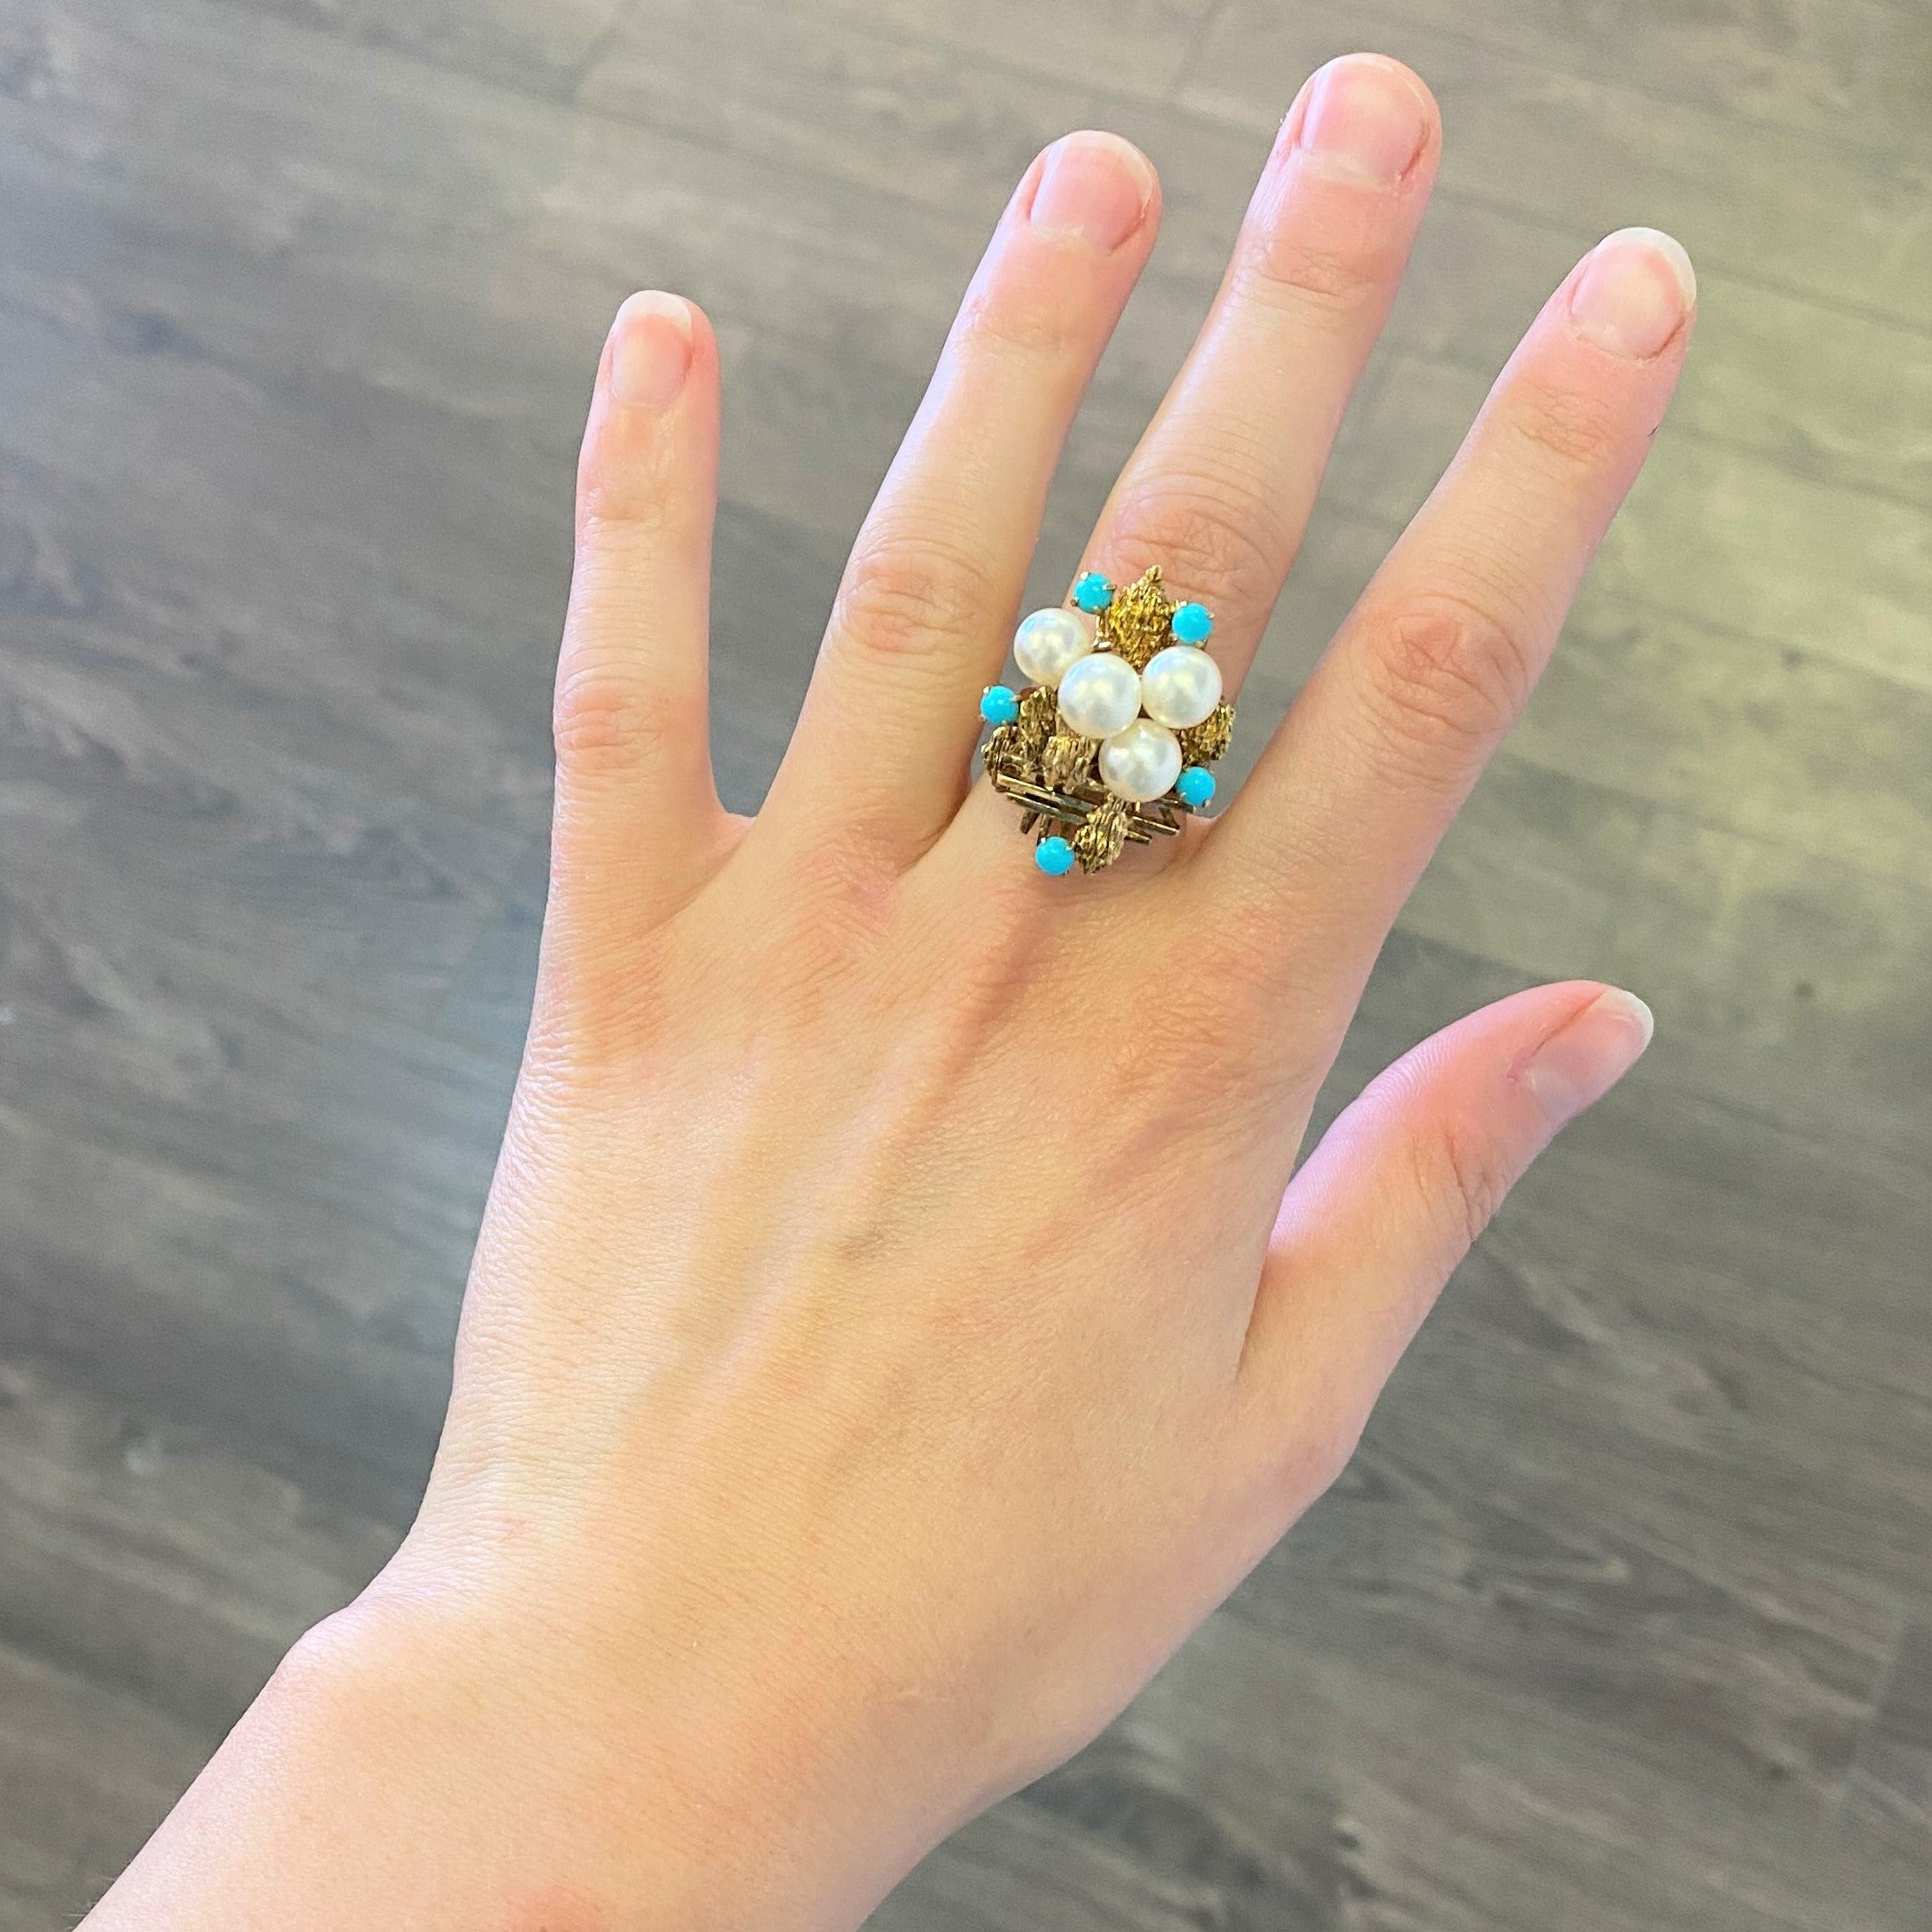 High Set Pearl & Turquoise Ring | SZ 7.25 |